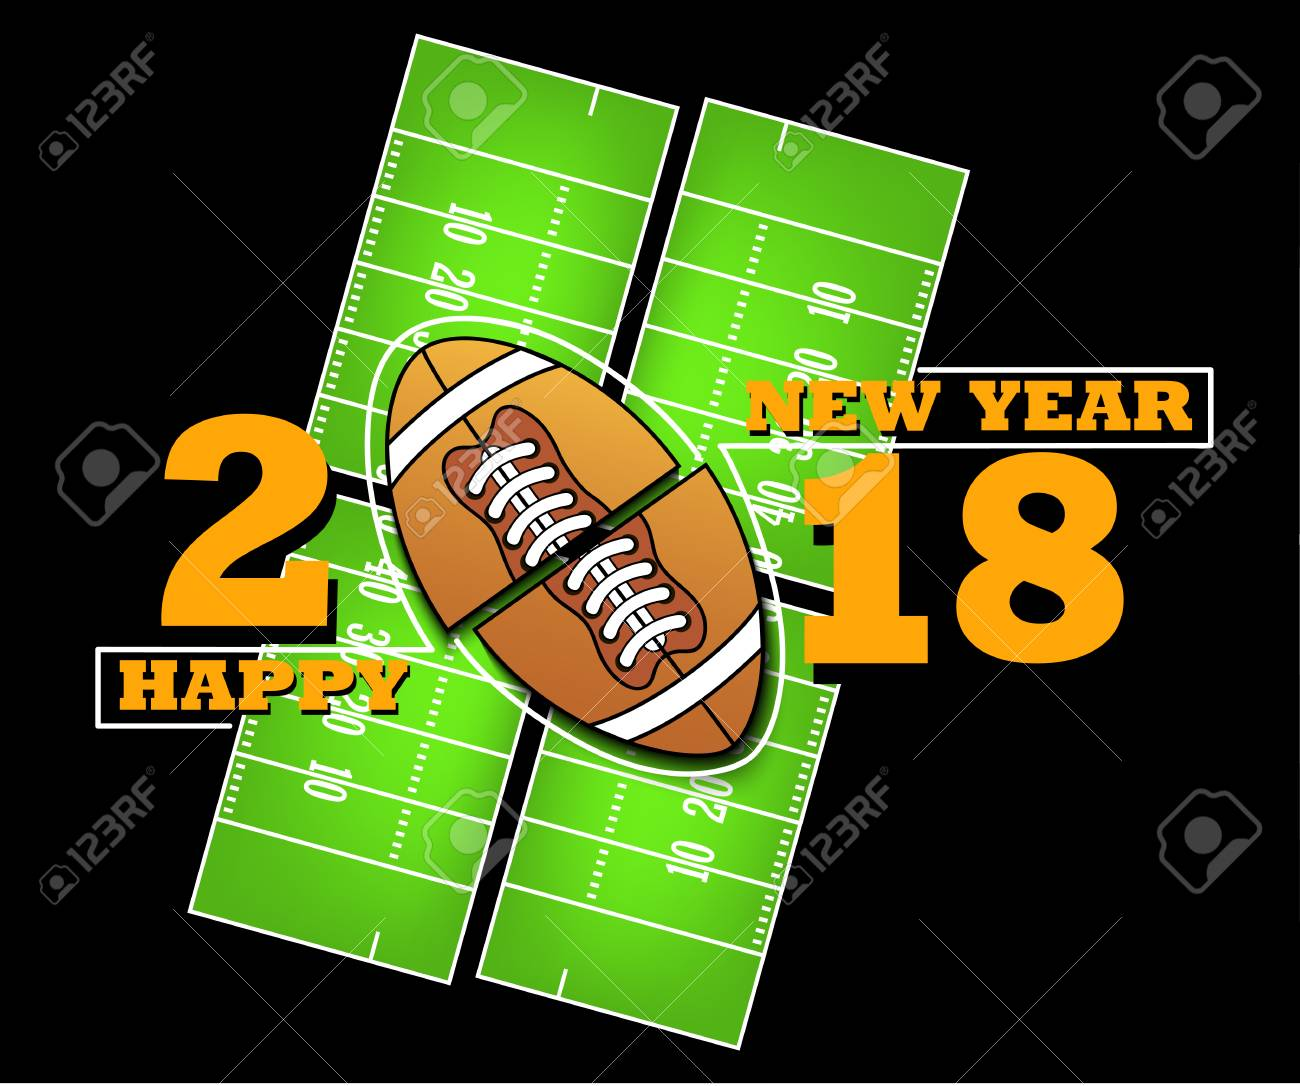 Happy New Year 2018 And Football Against The Background Of American